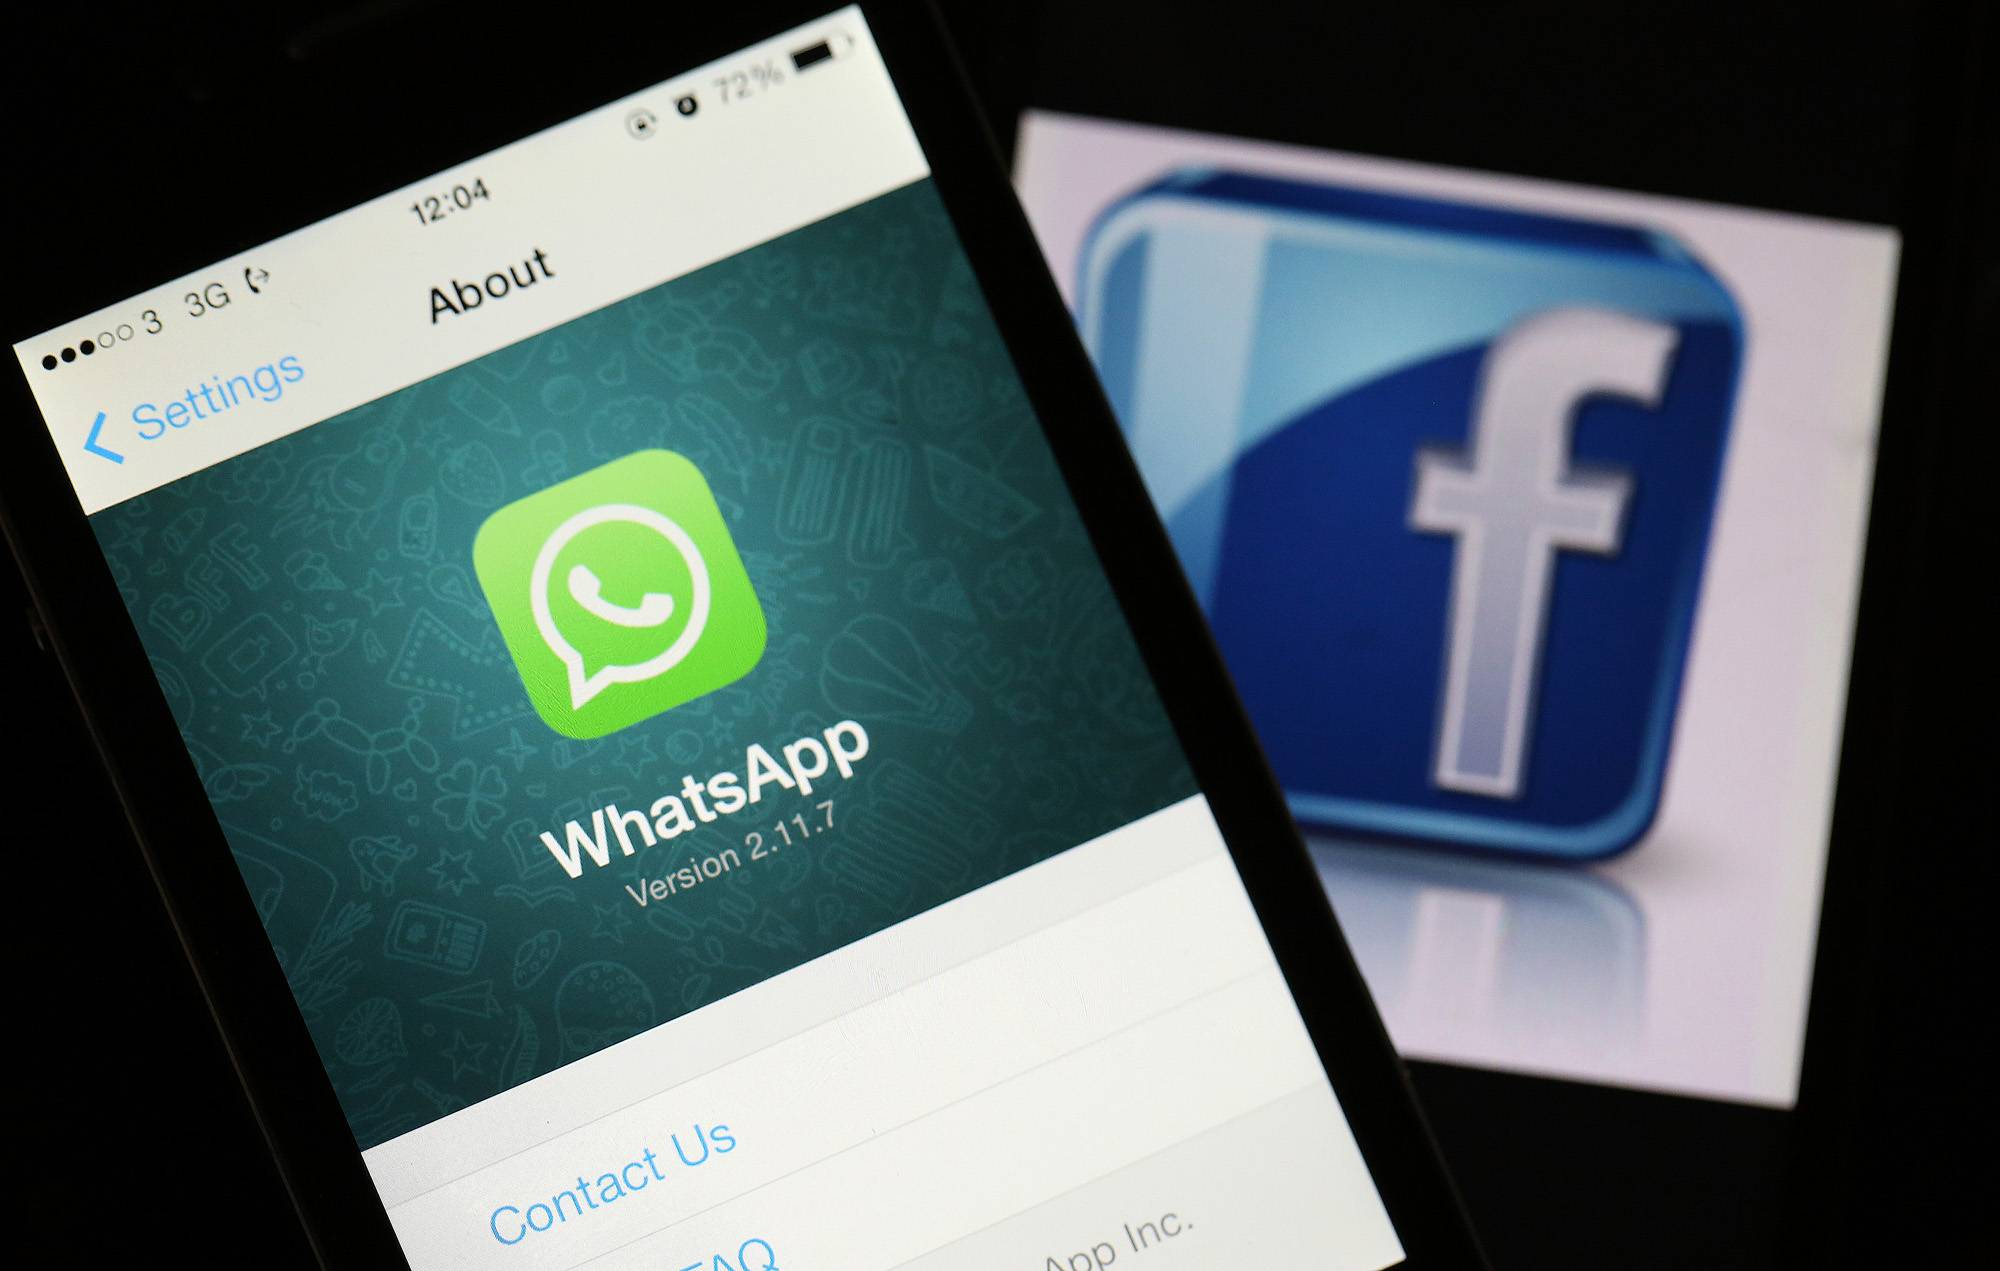 WhatsApp, the popular messaging service for smartphones that's being acquired by Facebook, will soon be offering a voice service.